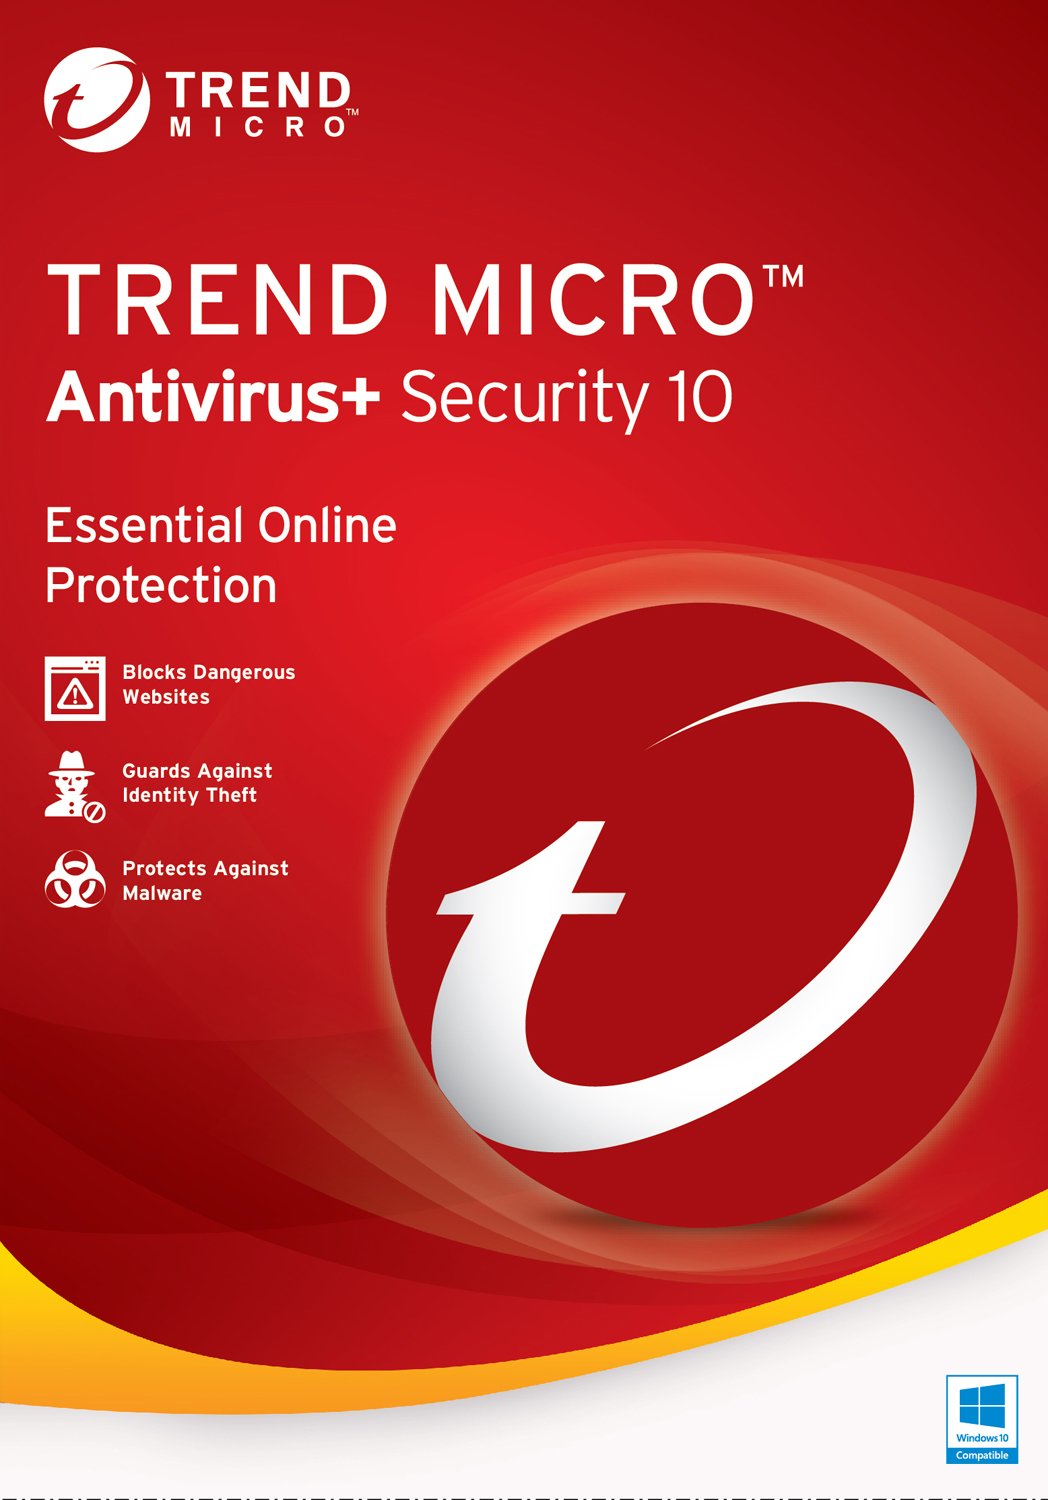 Trend Micro Antivirus+ 10 Download 1 Direct store User Limited time trial price